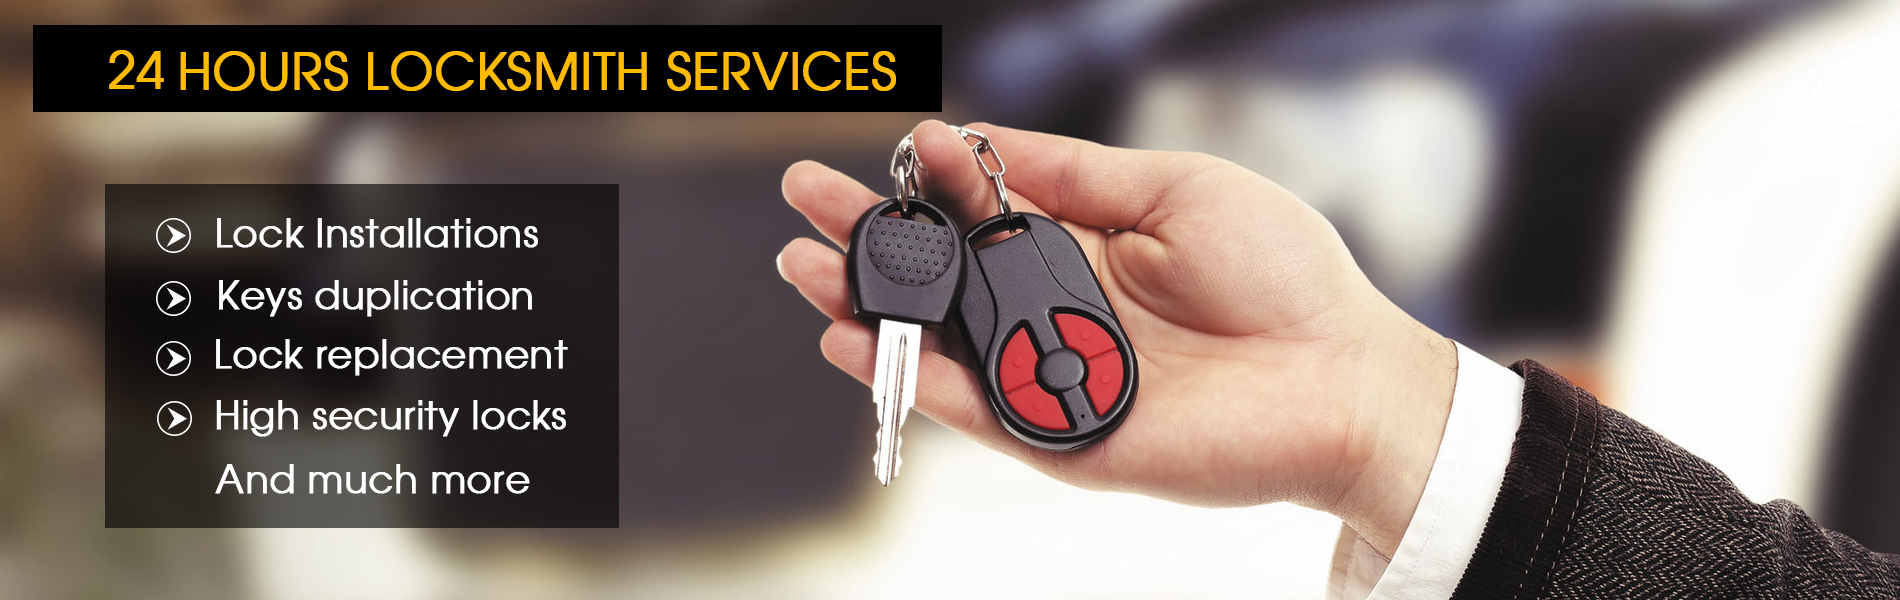 Exclusive Locksmith Service San Francisco, CA 415-968-3940